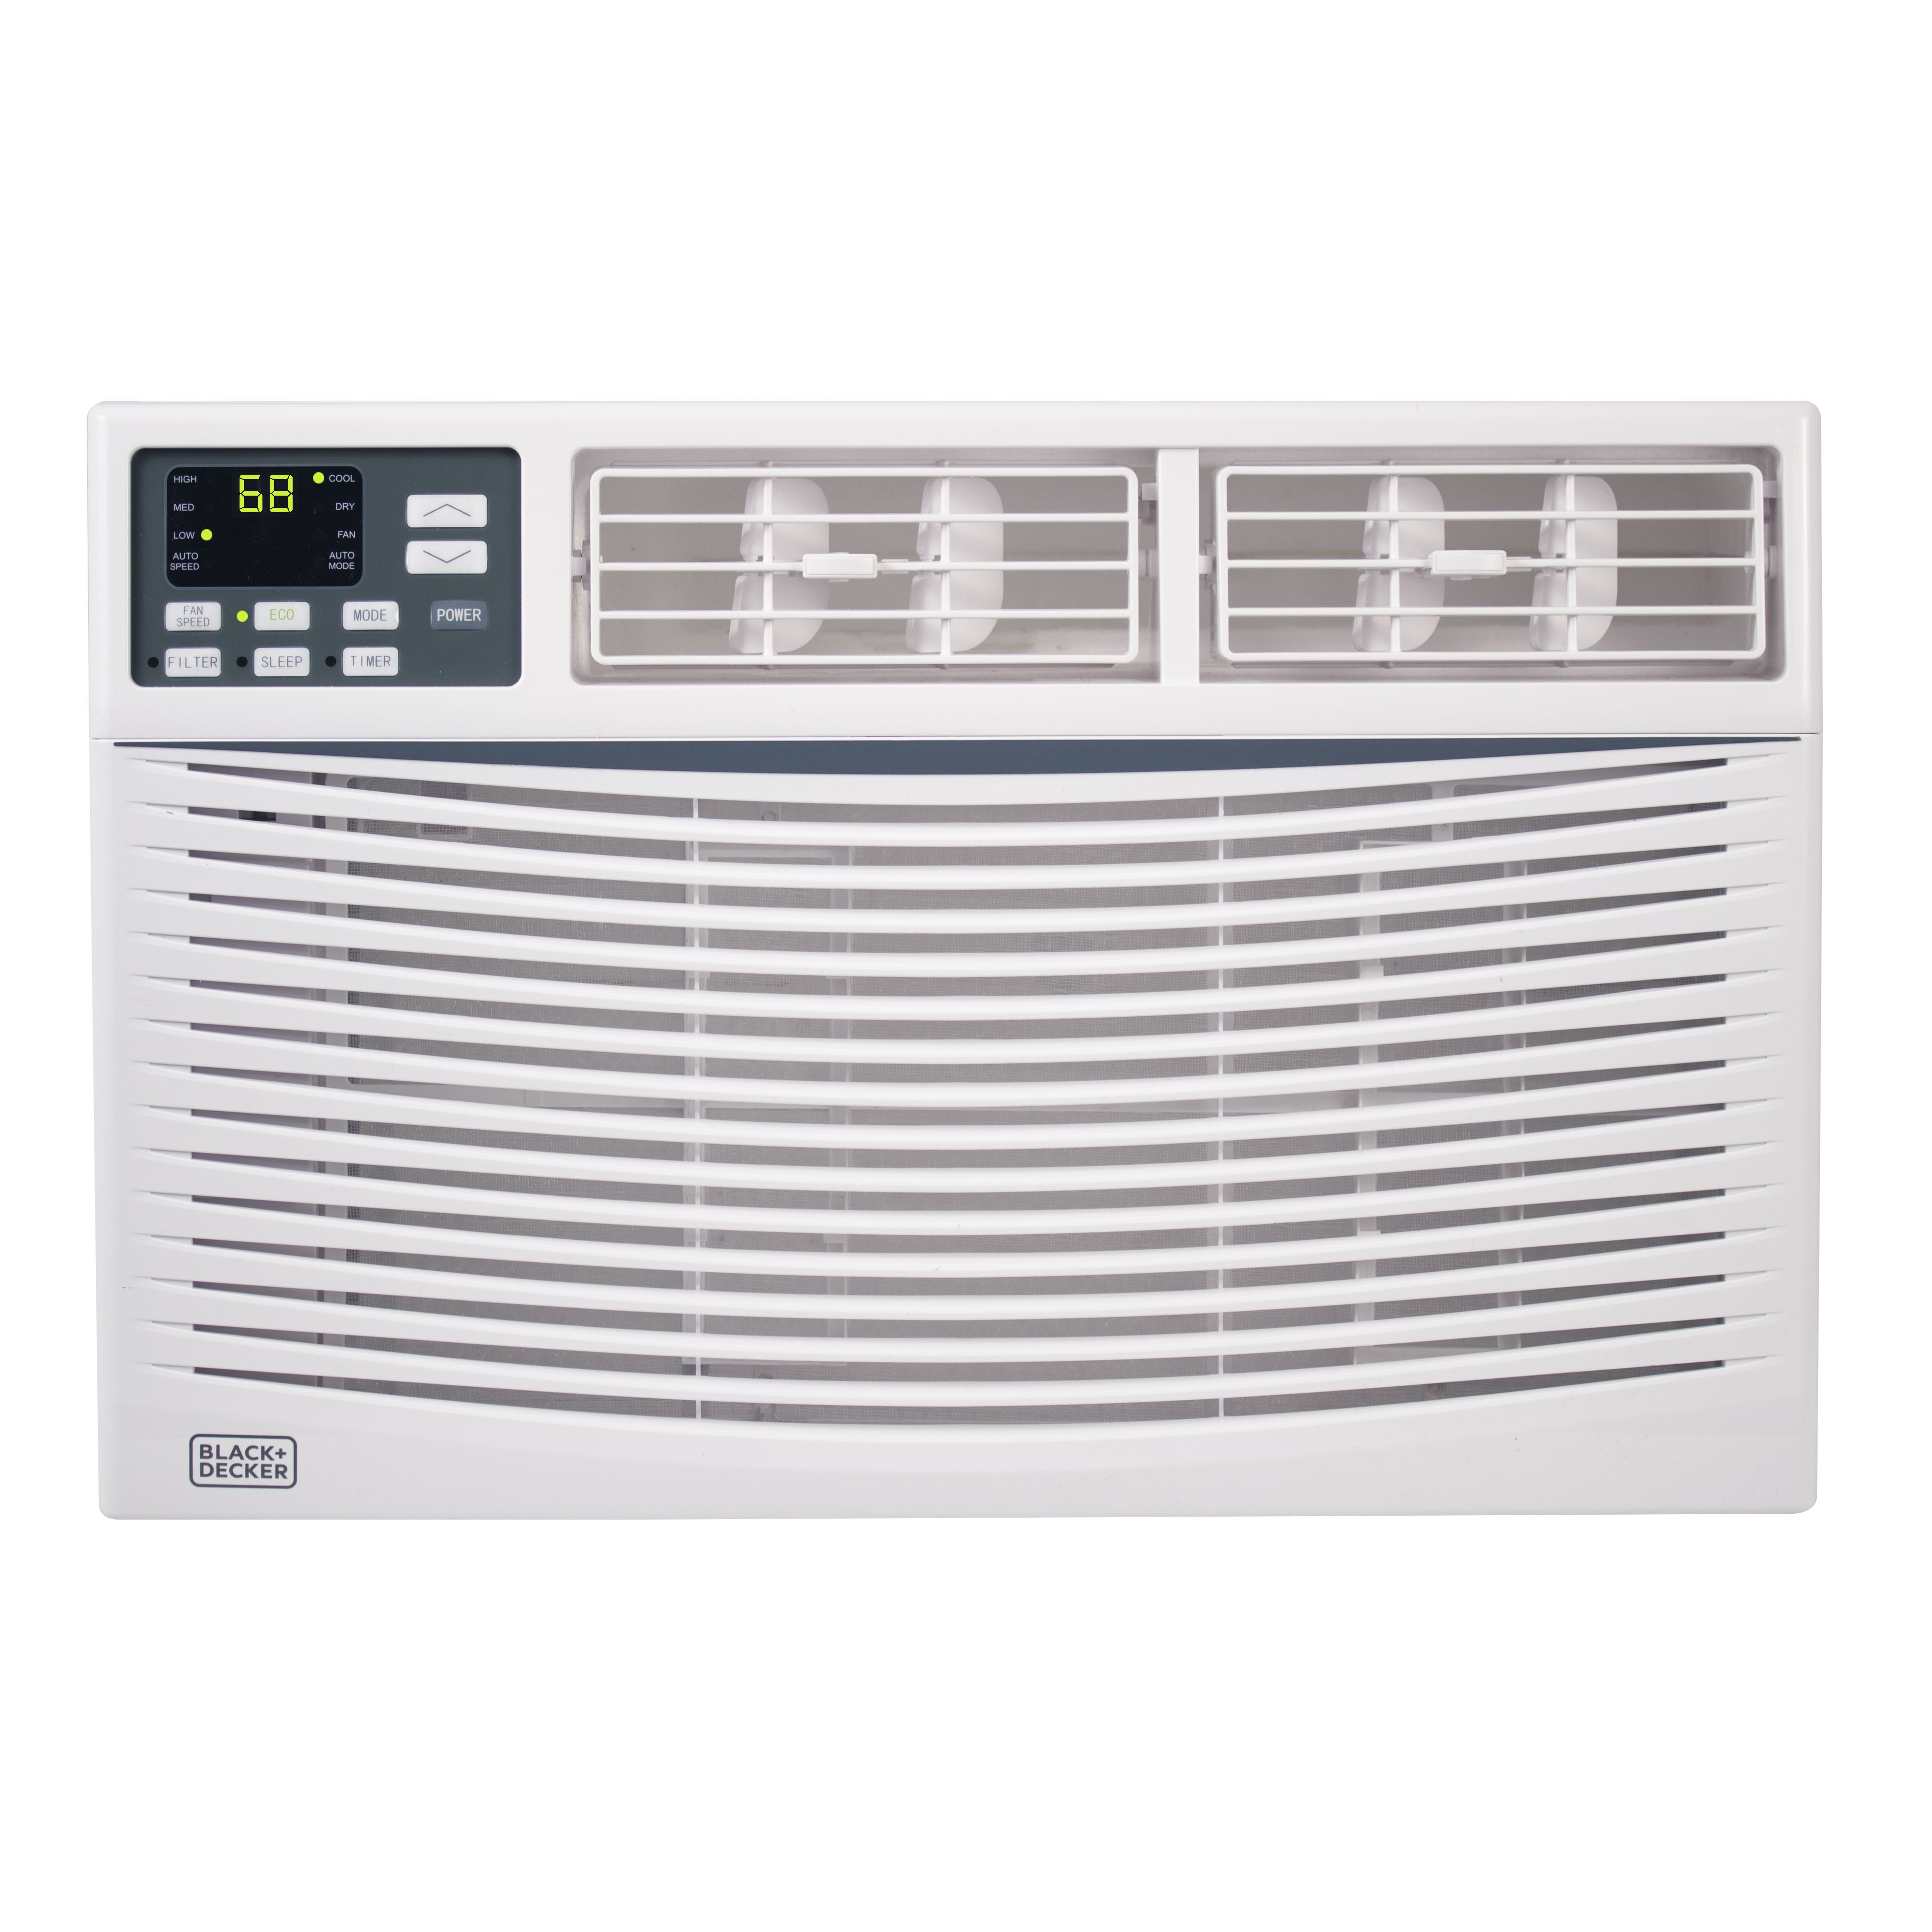 BLACK+DECKER 10,000 BTU ENERGY STAR Electronic Window Air Conditioner with Remote Control